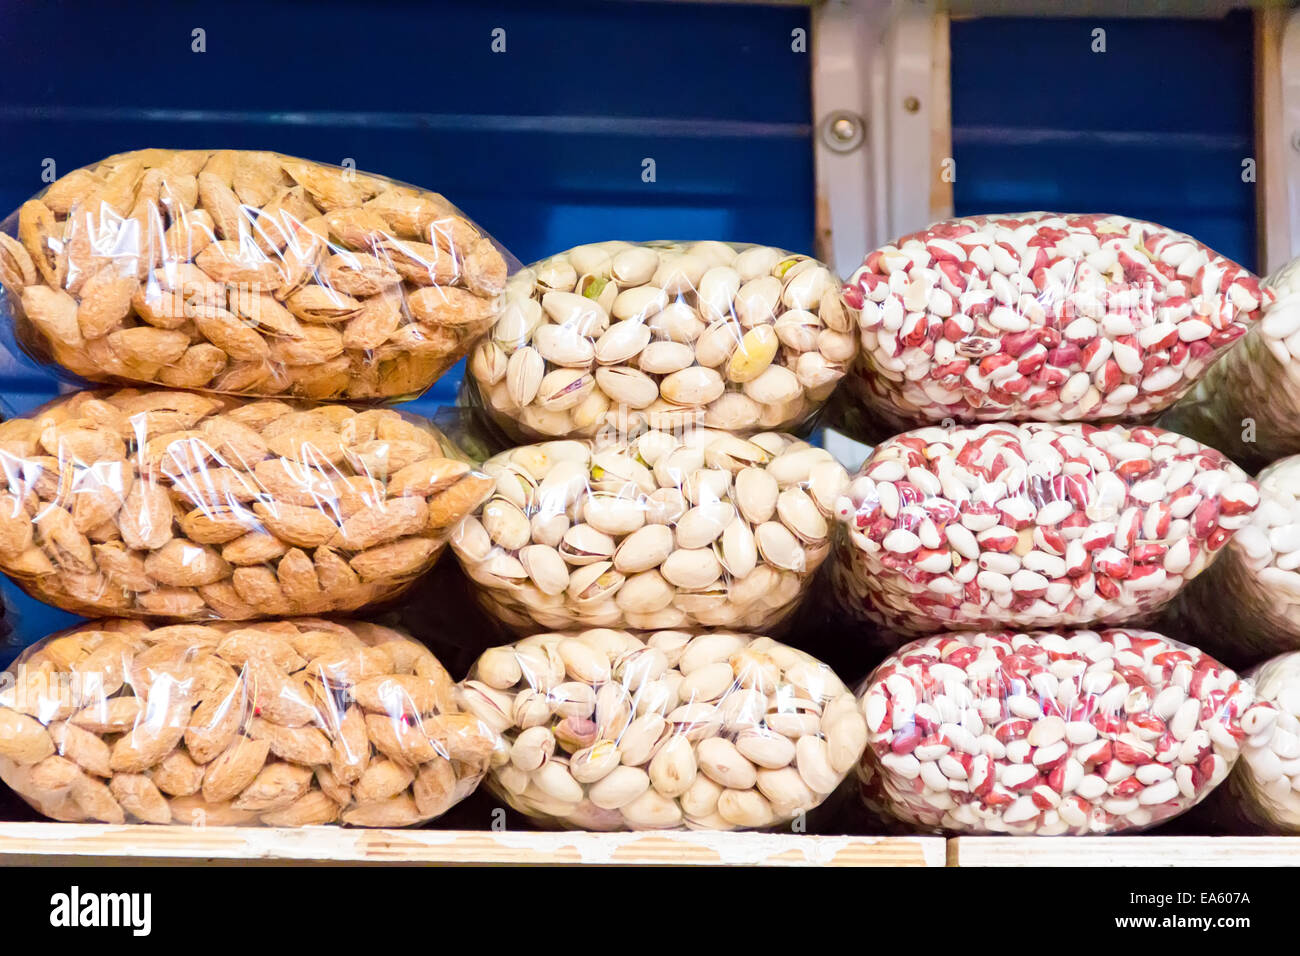 Counter in market place with bean and nuts - Stock Image